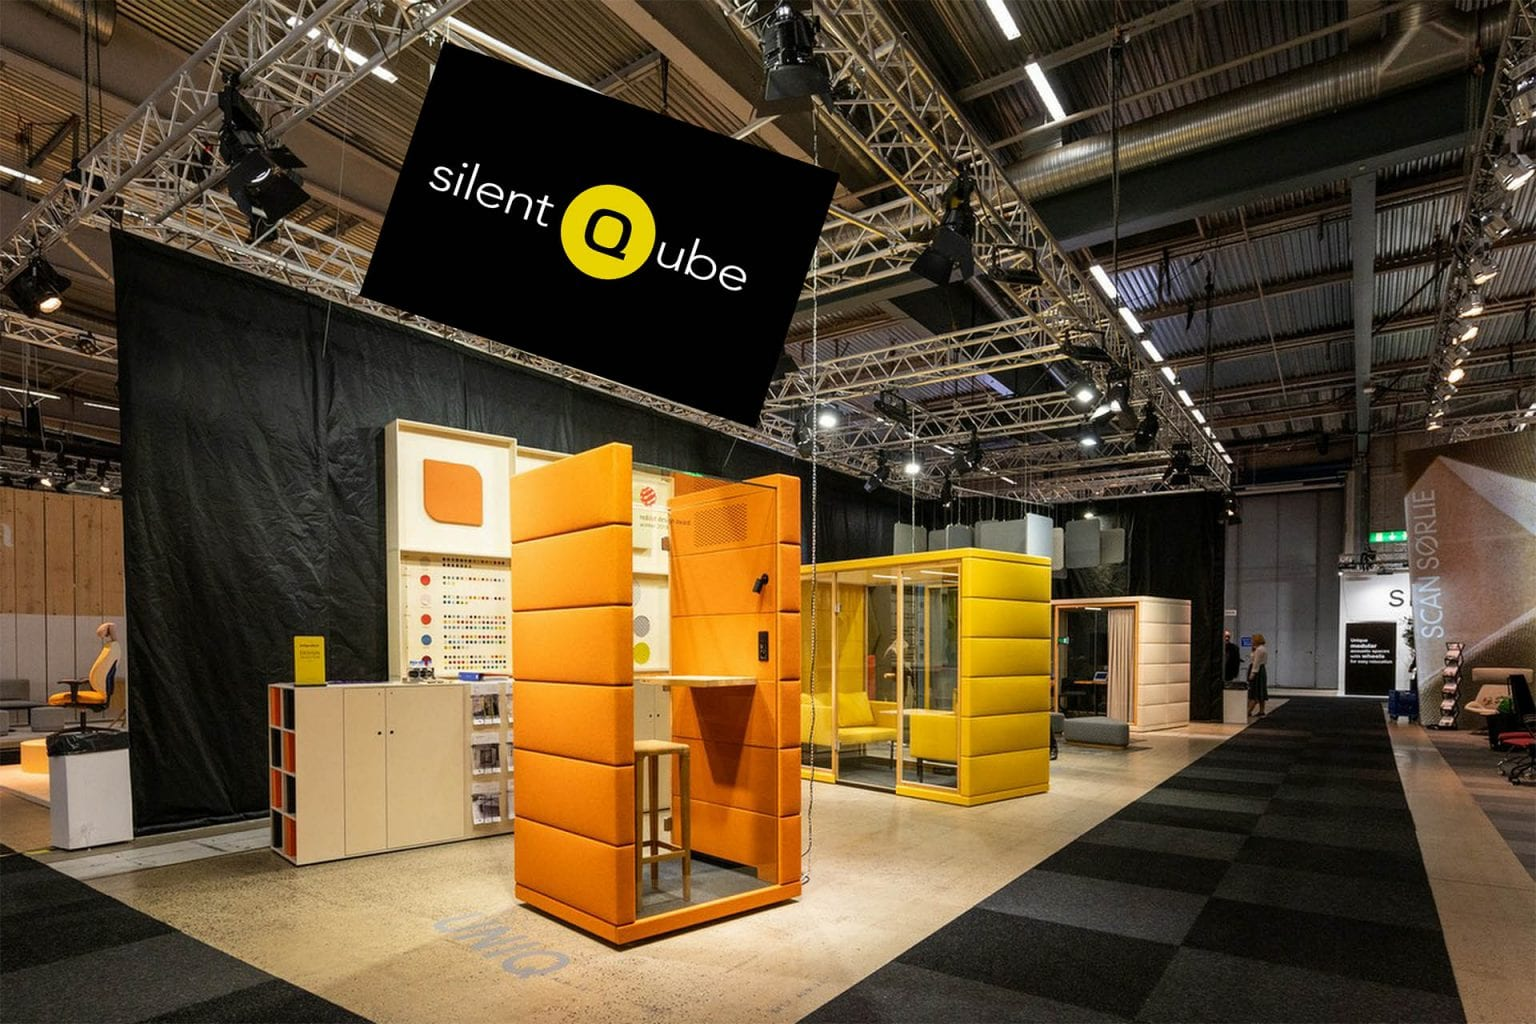 Silent Qube Messe-Stand